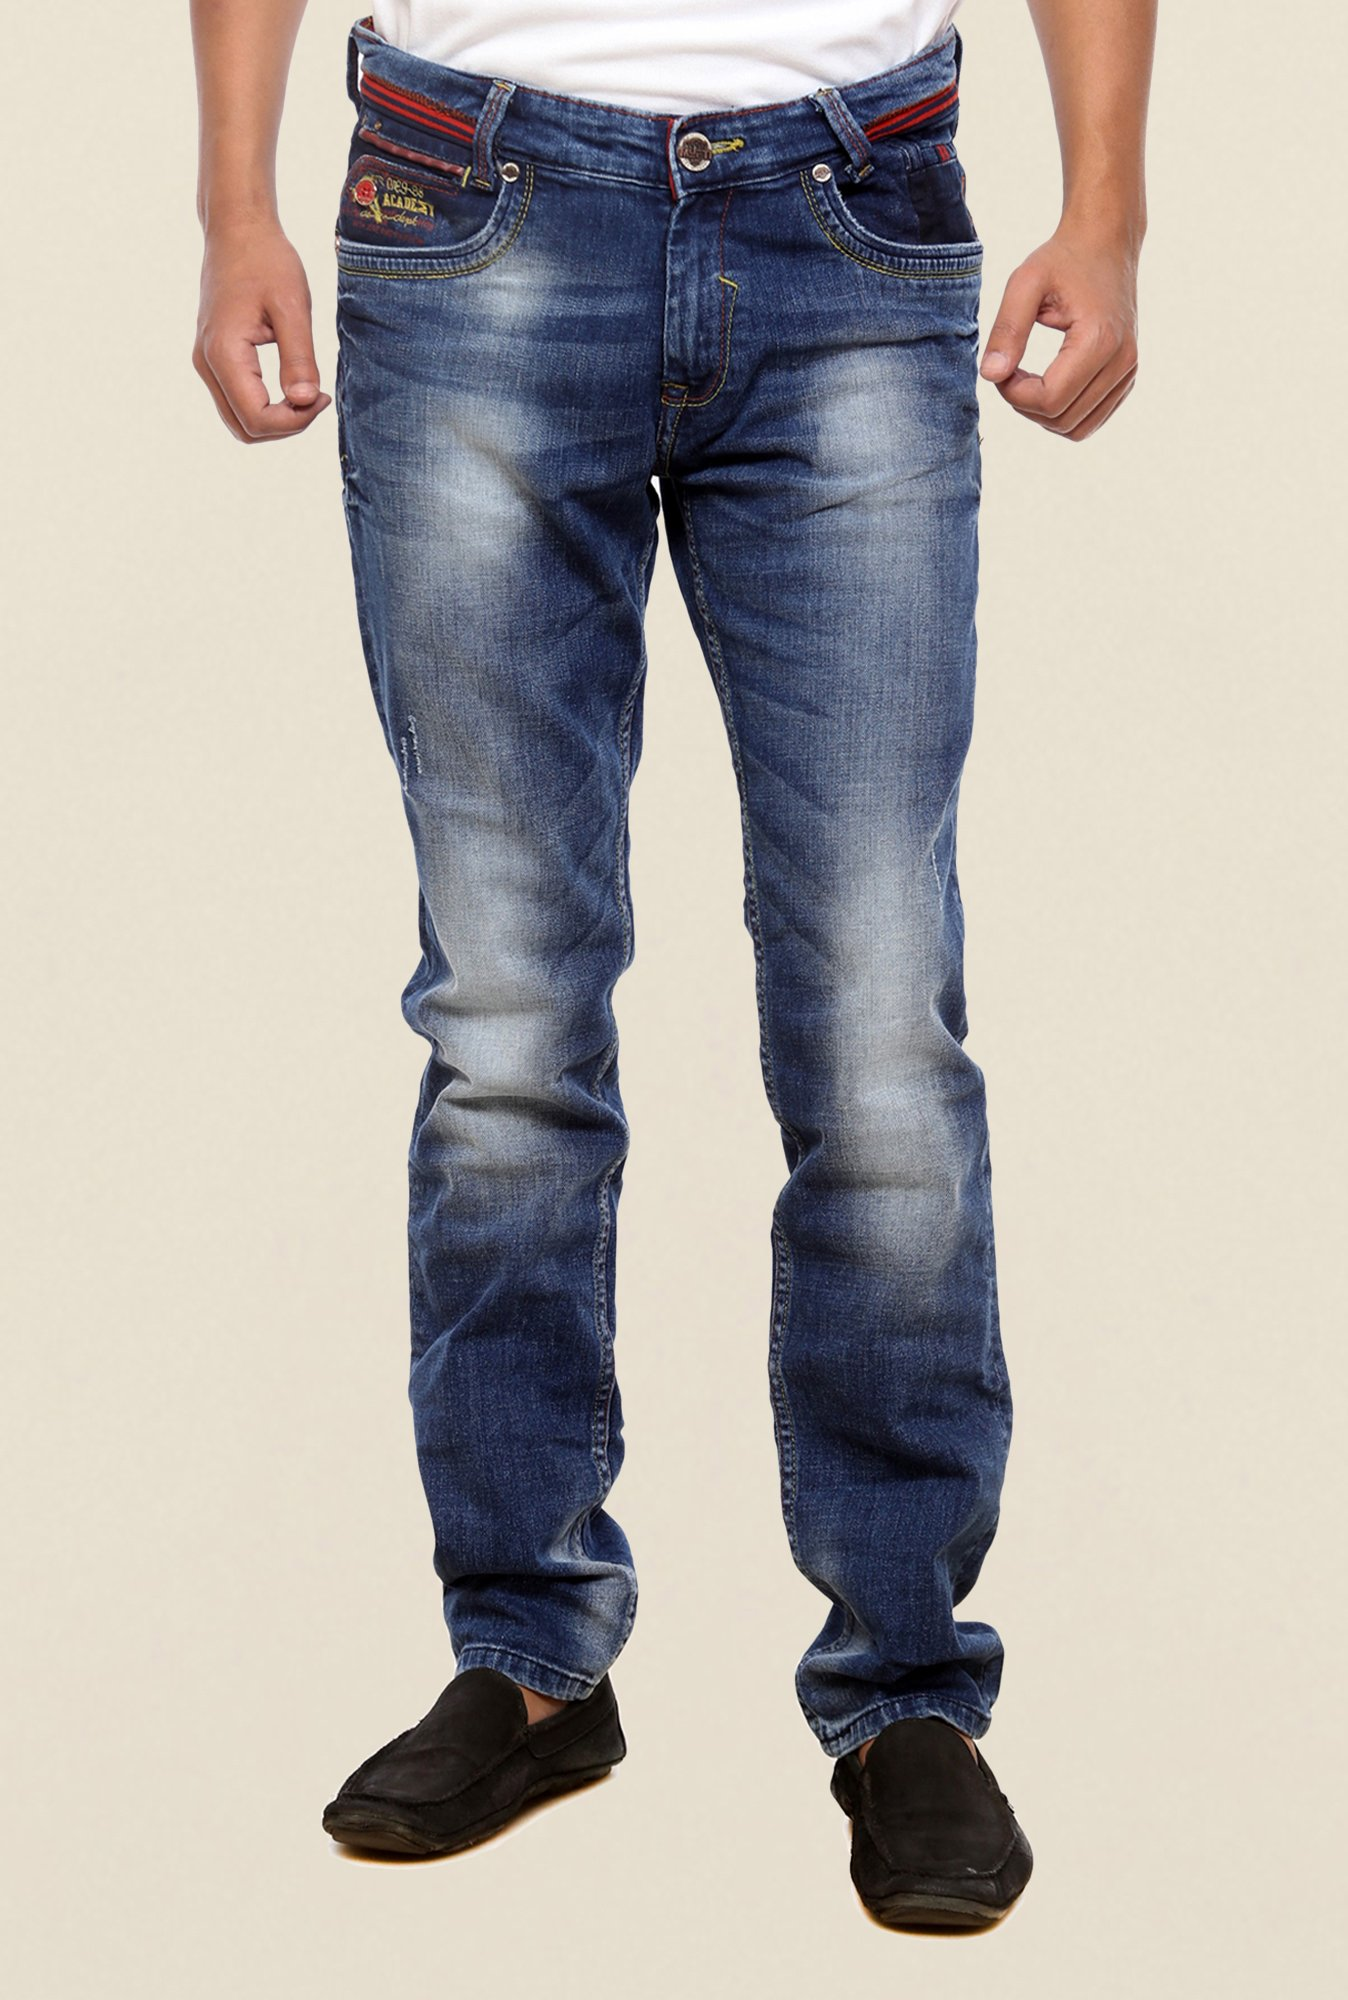 Mufti Blue Lightly Washed Jeans